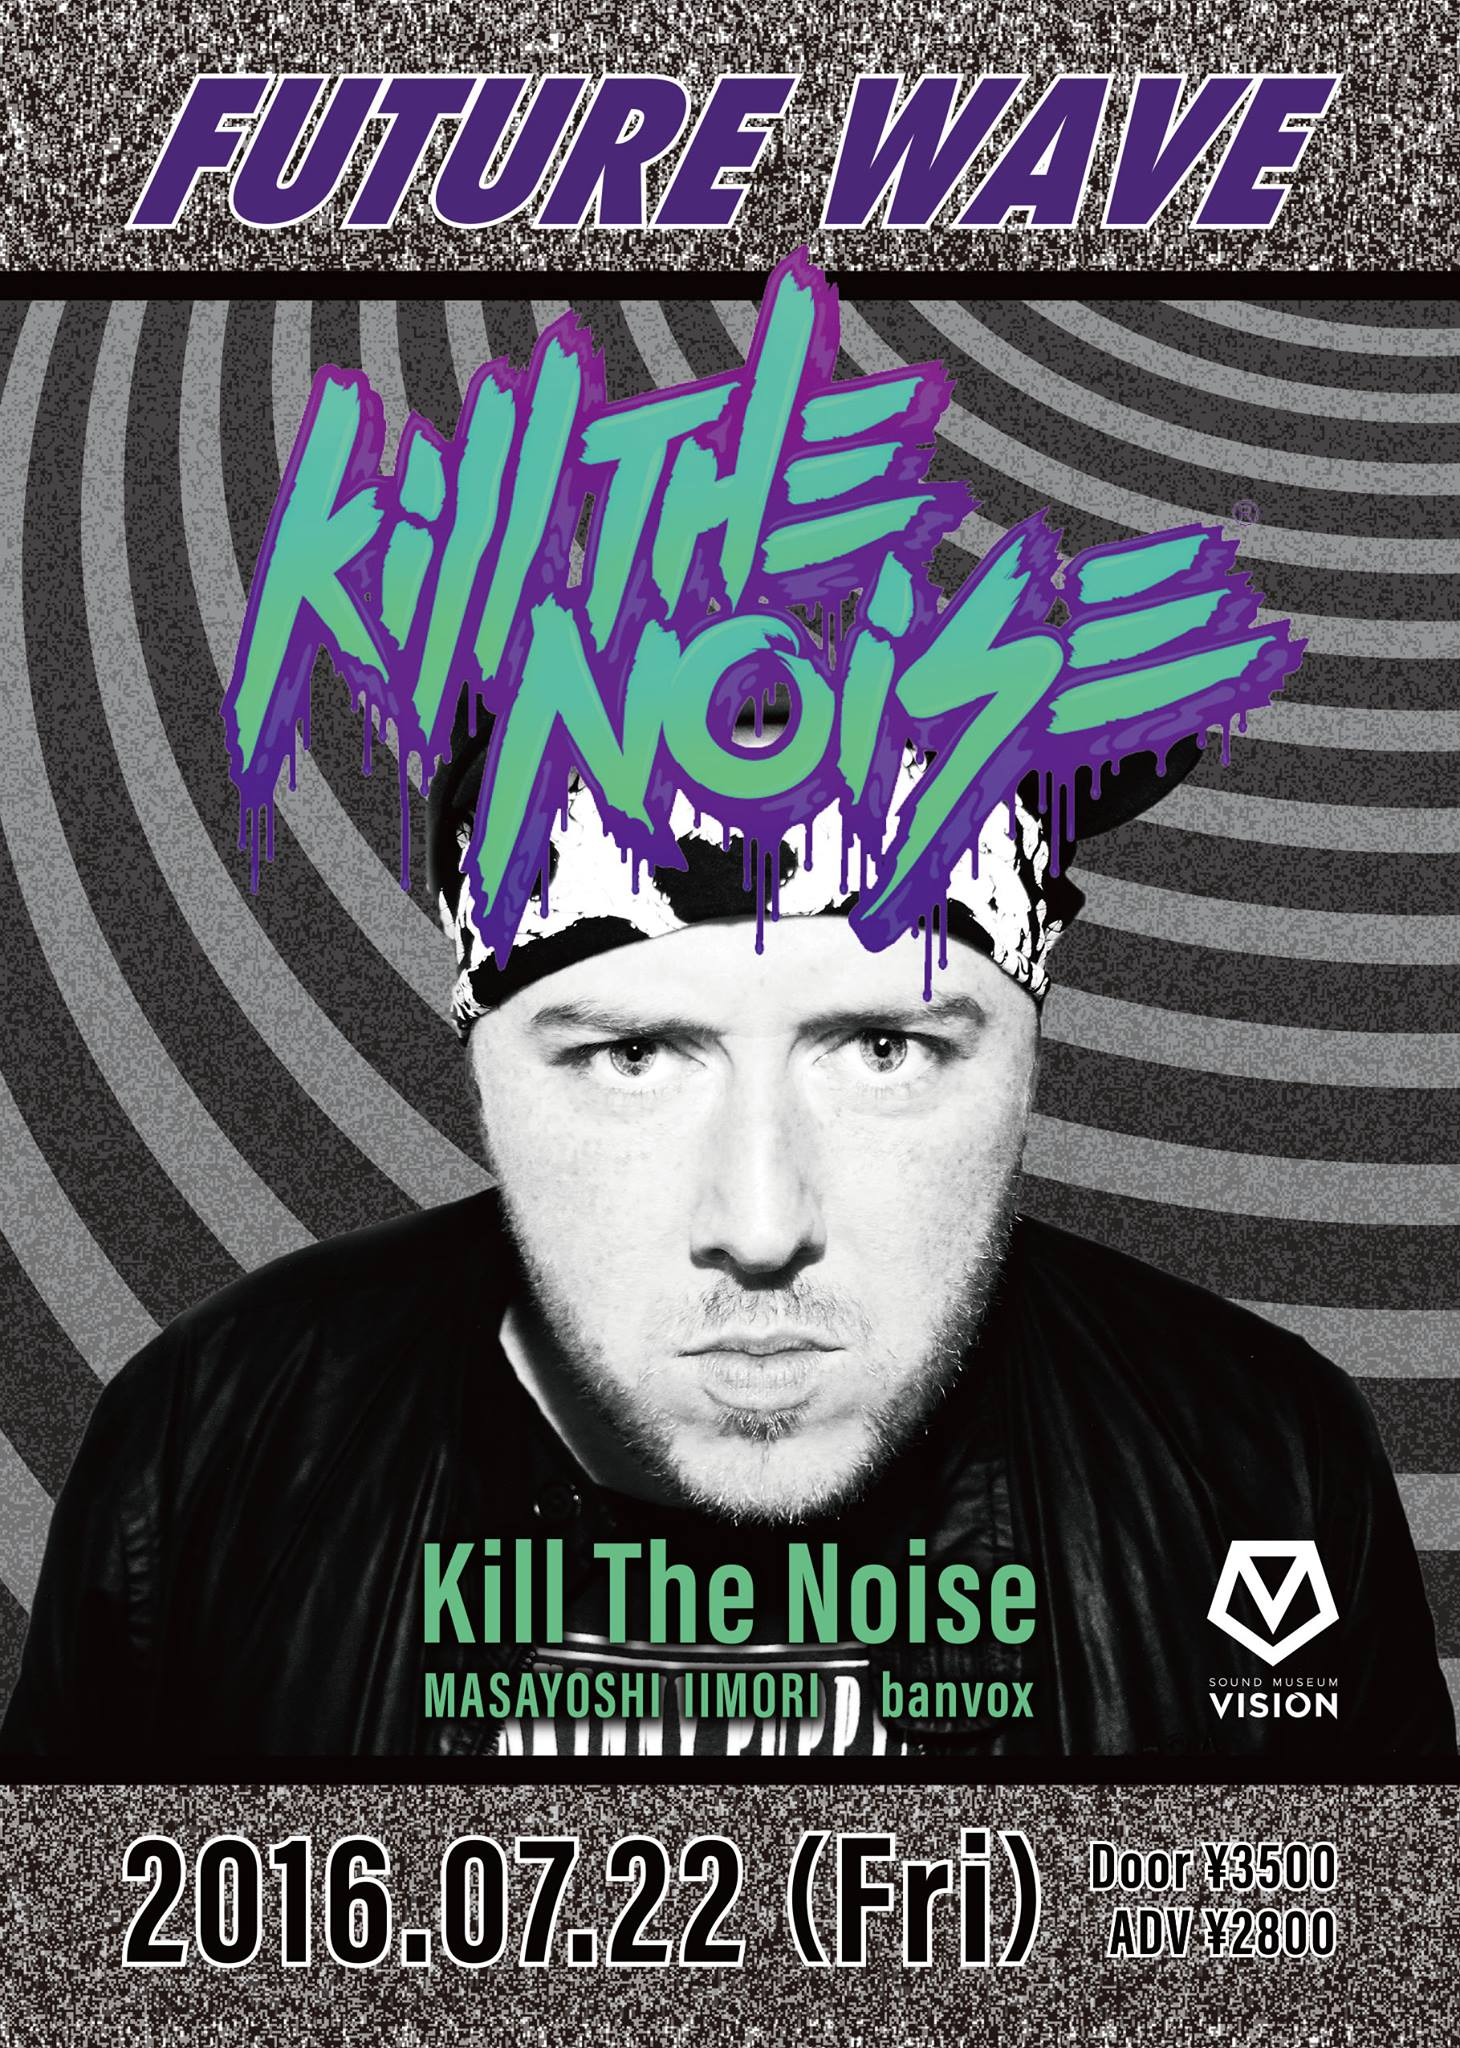 KILL THE NOISE VISION